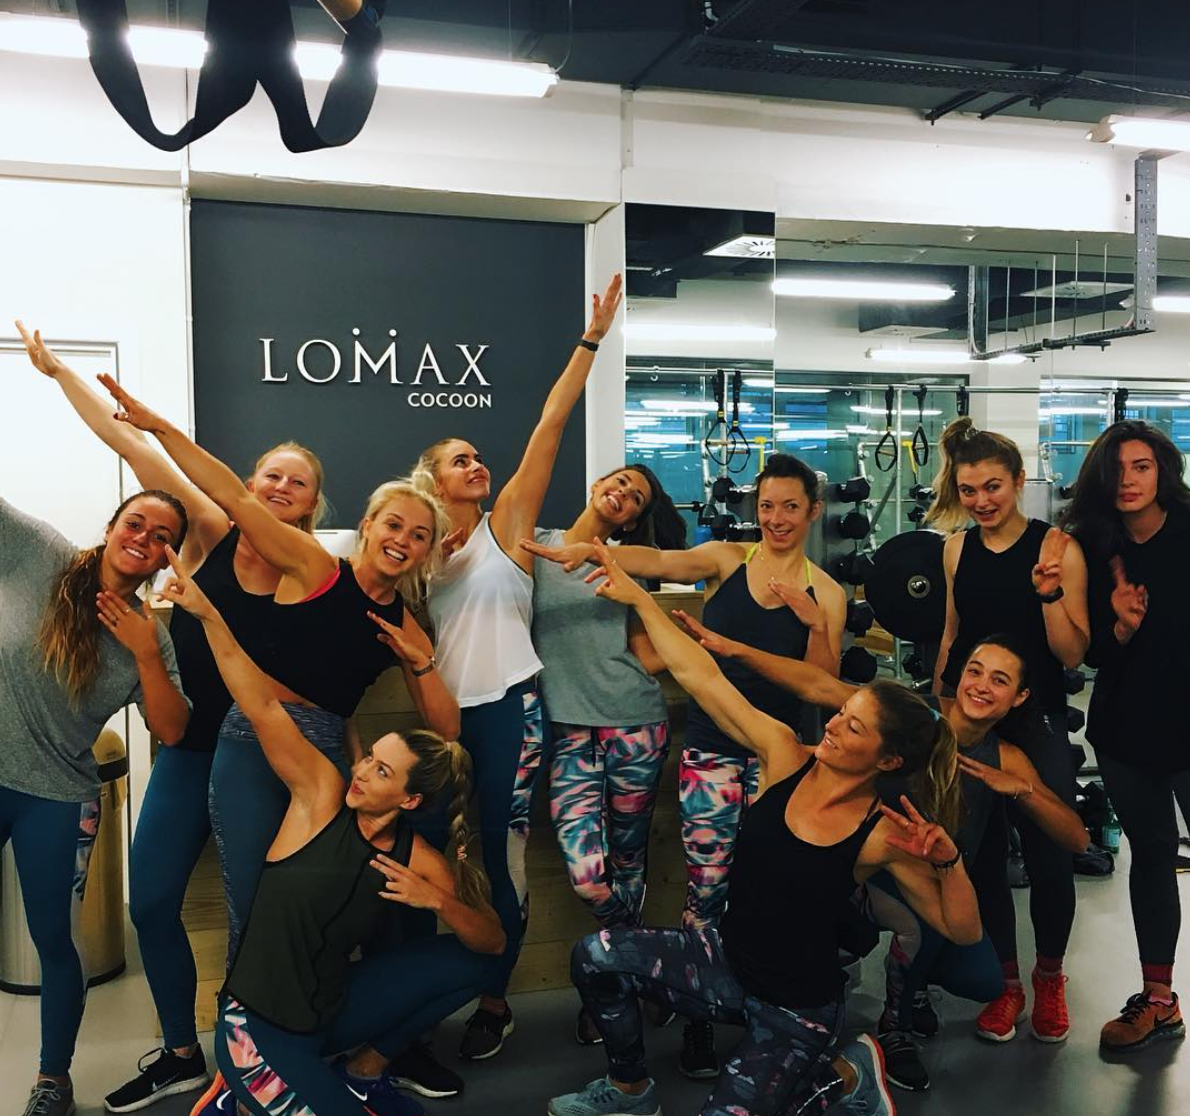 Strong Women for the Roxy Fitness event, at Lomax Cocoon. I ran the session with Lomax Trainer Charlie Launder, to give the girls a 45 minute blast before fuelling up with Nutrii, before the Yoga session with Kim Hartwell. Fantastic to have such a strong squad, all representing in bright lycra :)